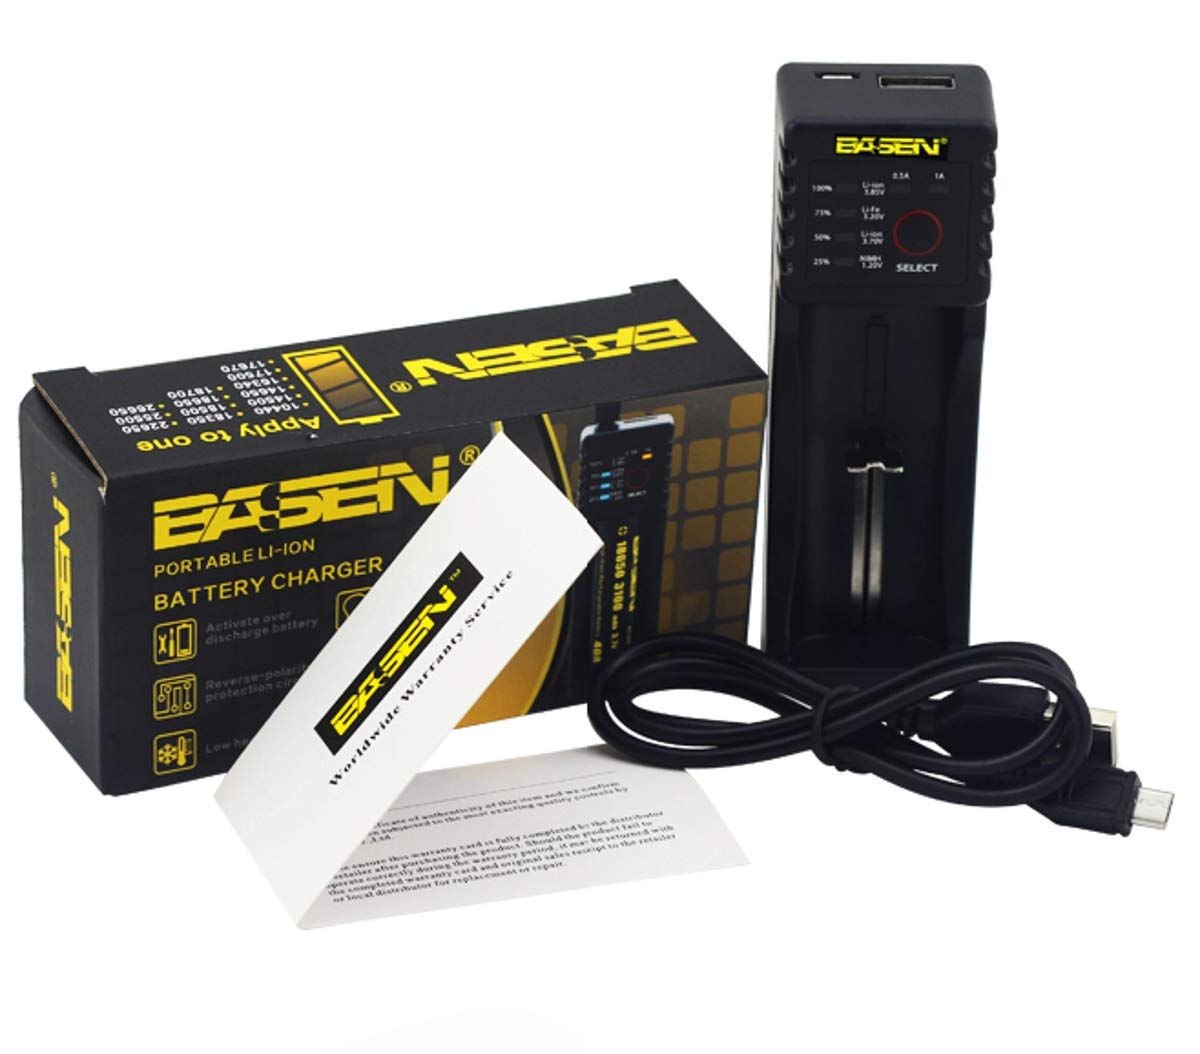 BS1 external lithium ion USB battery charger chargers 18650 12v aaa travel rechargeable 3.7v 3.7 li-ion aa universal batteries single smoking 26650 detector current voltage 3.6v core rcr123a boNuS